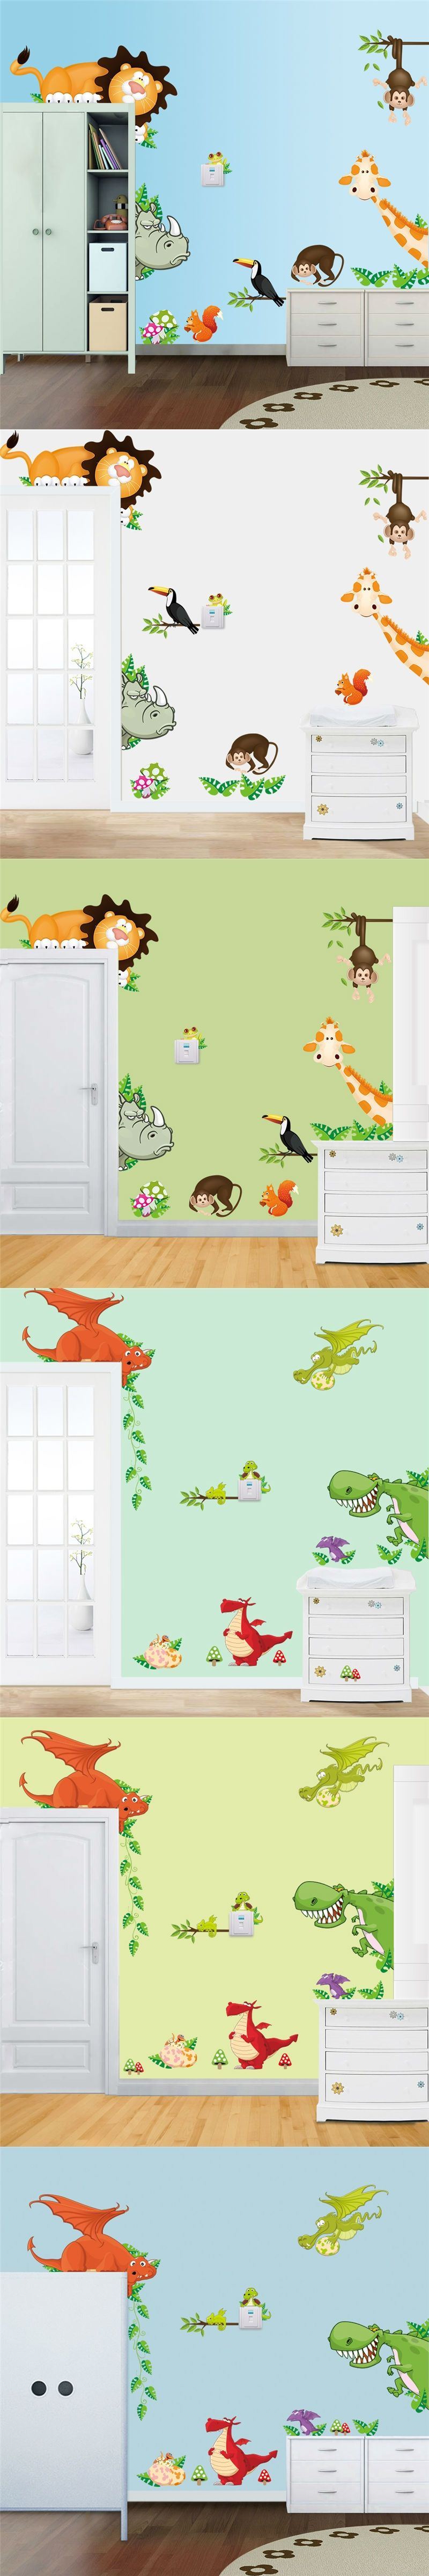 animals 3d wall stickers for kids room decoration diy cartoon lion ...